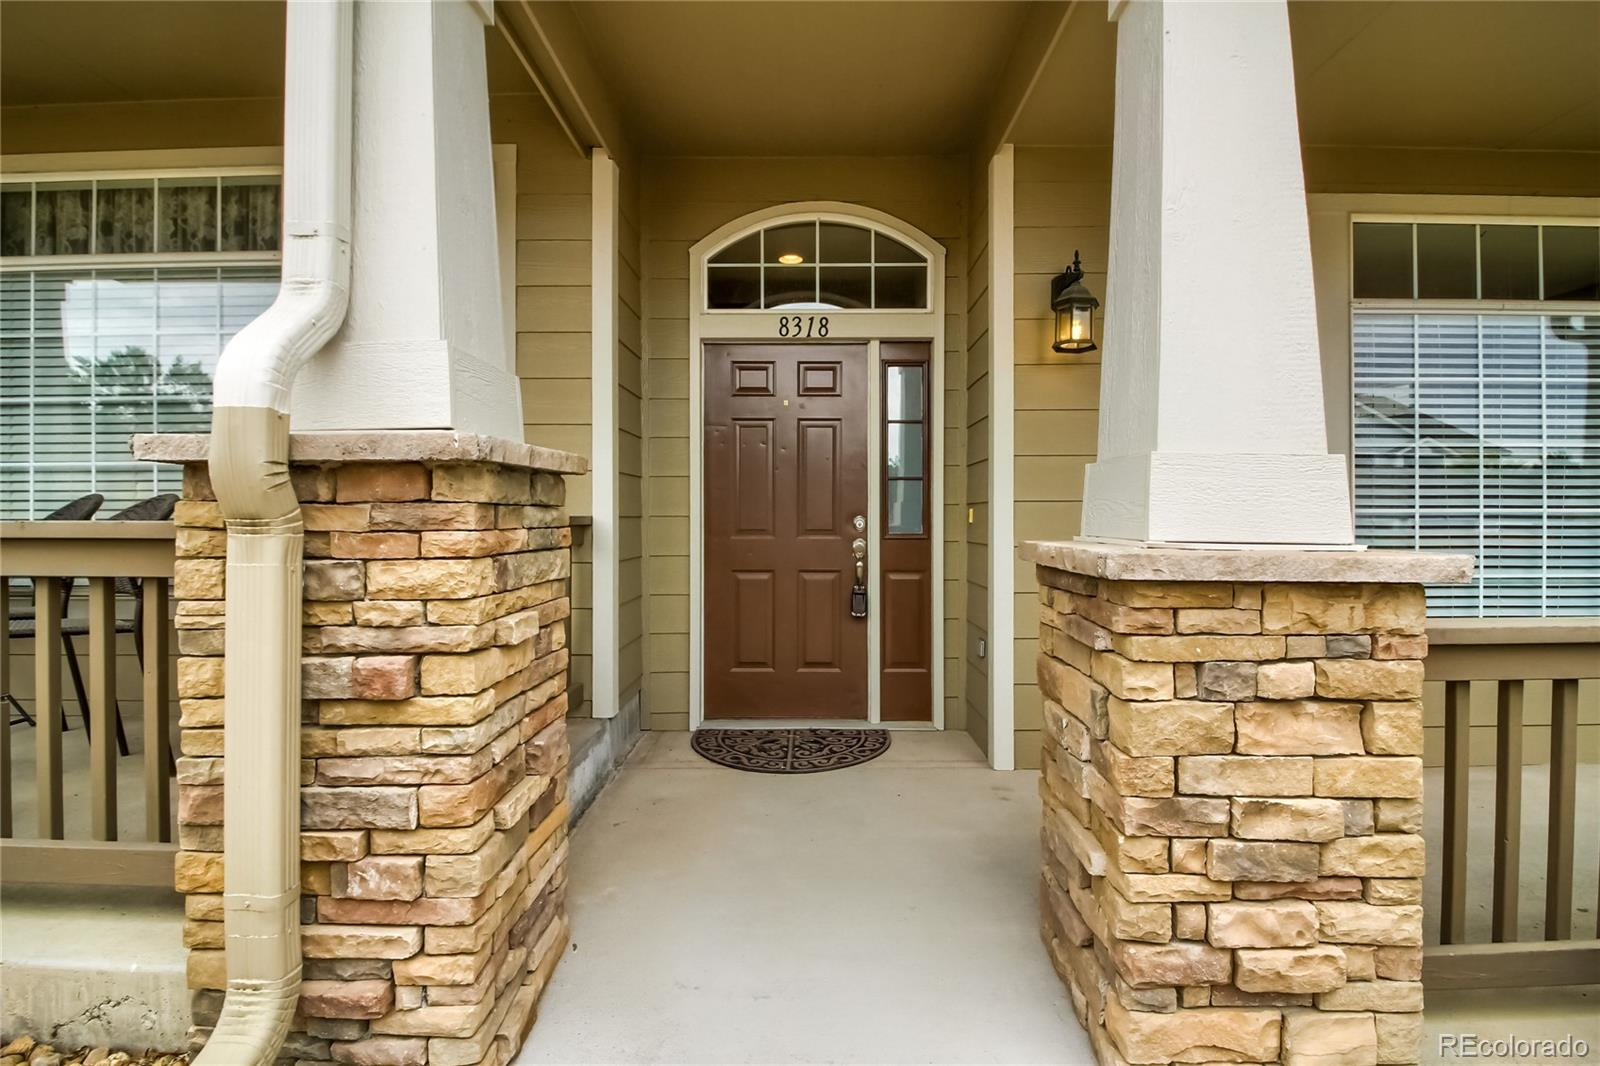 Centrally located townhouse with two master suites. 2 car garage with overhead storage. Kitchen opens to eating area as well as living area. This is a rare end unit with very large windows and large vaulted ceilings. Close to C 470 and a short drive to Park Meadows Mall.